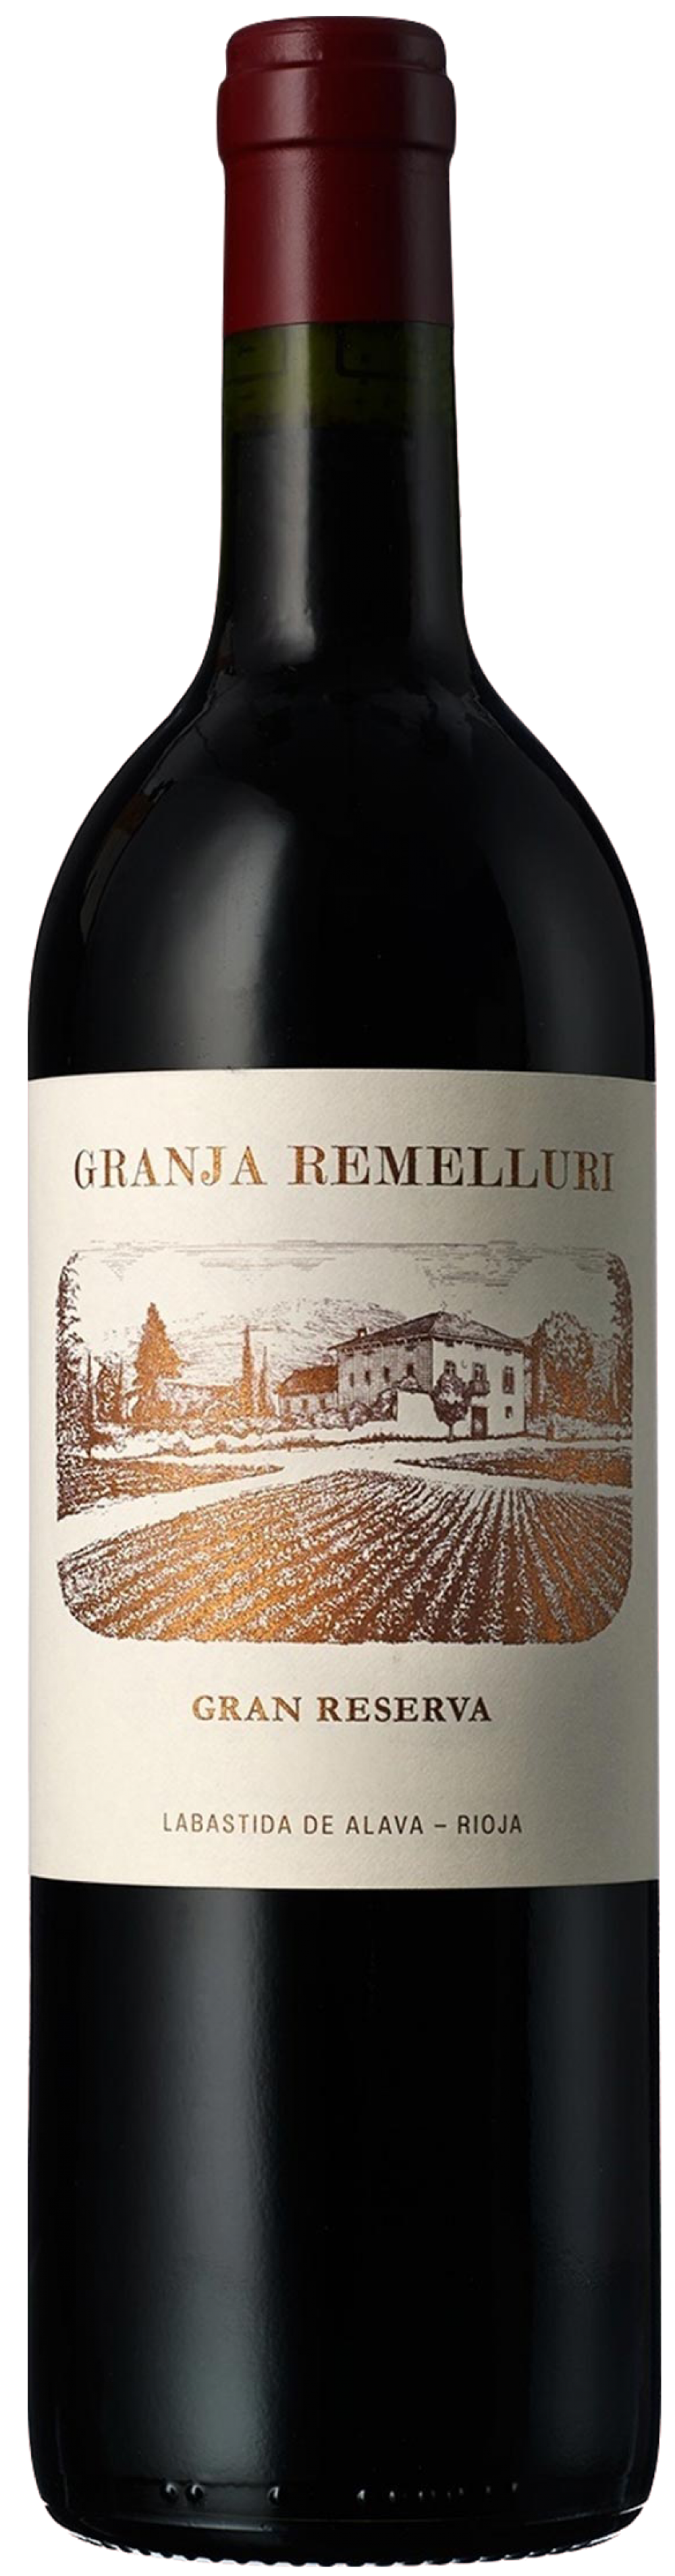 files/images/wines/Spain/remelluri/remelluri gran reserva 2010.png